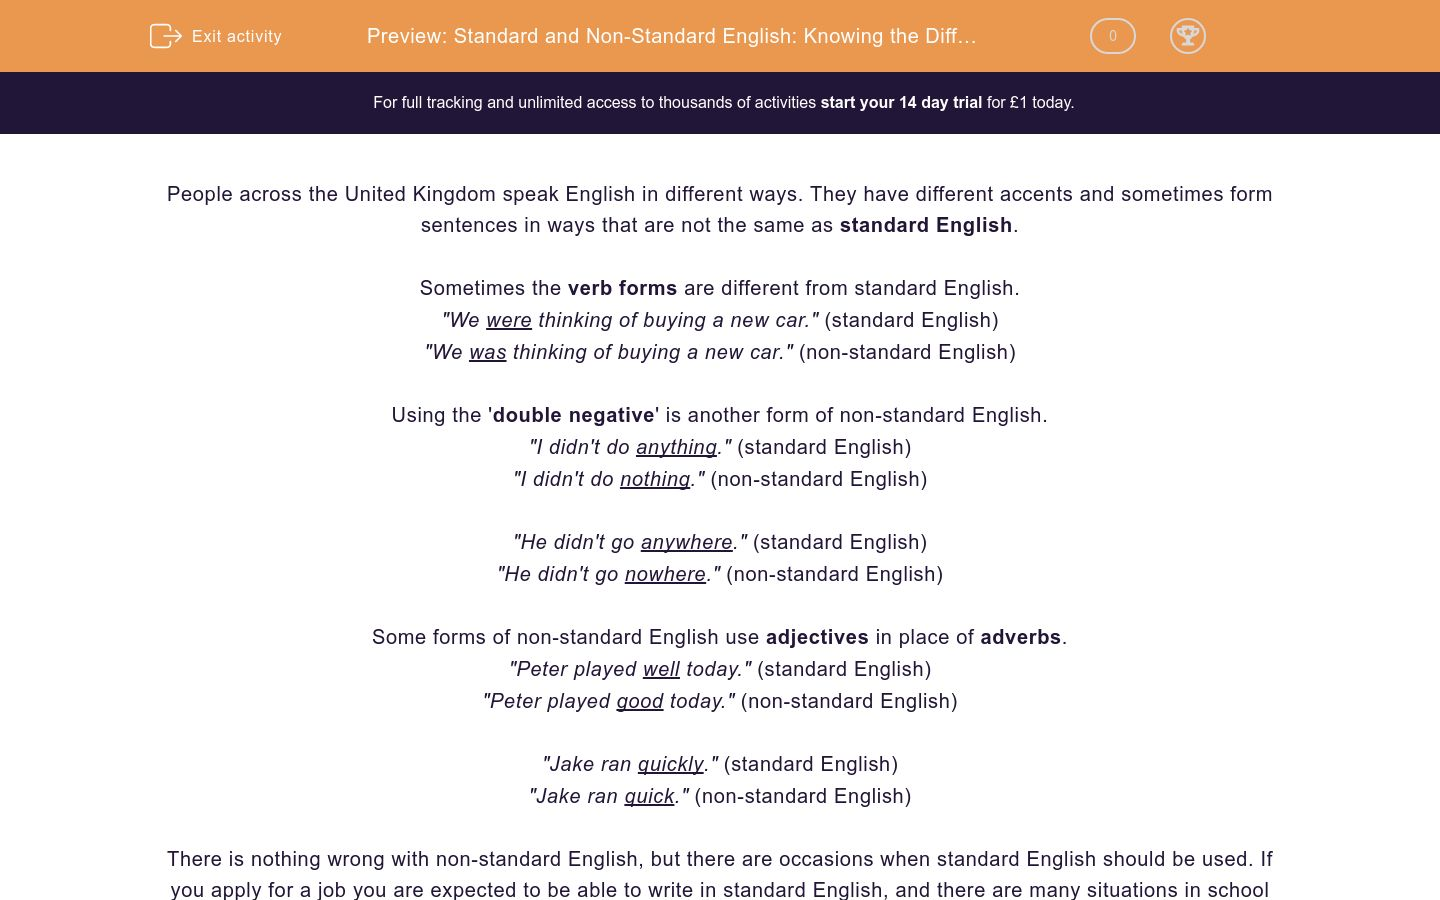 'Standard and Non-Standard English: Knowing the Difference' worksheet